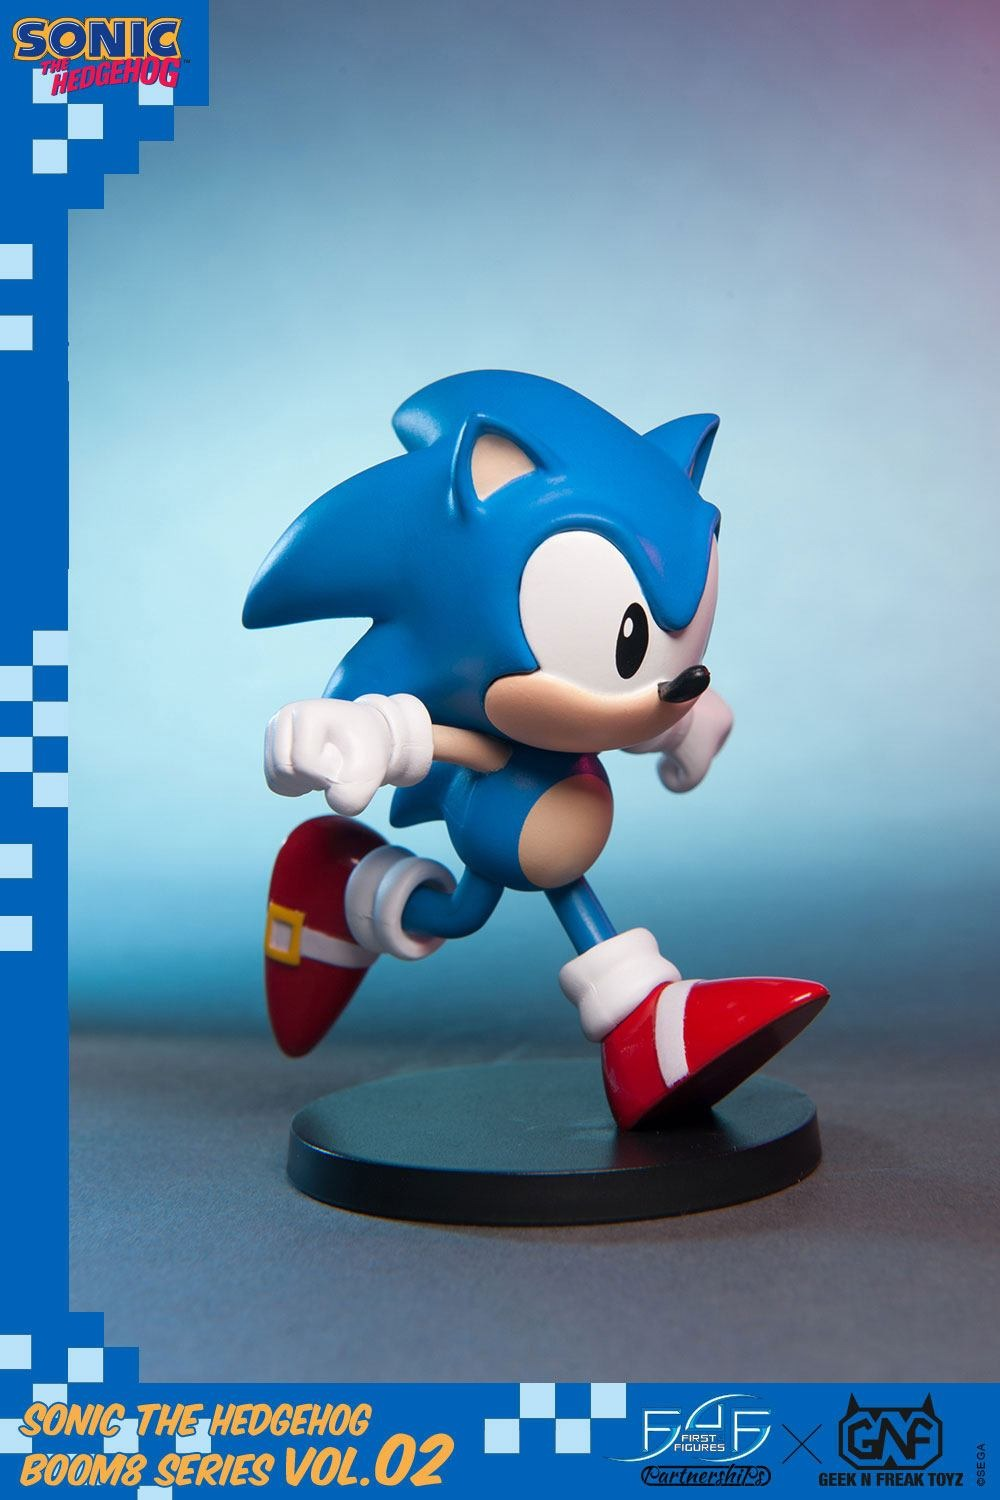 Figurka Sonic The Hedgehog - BOOM8 Series Vol. 2 Sonic (First 4 Figures) (PC)